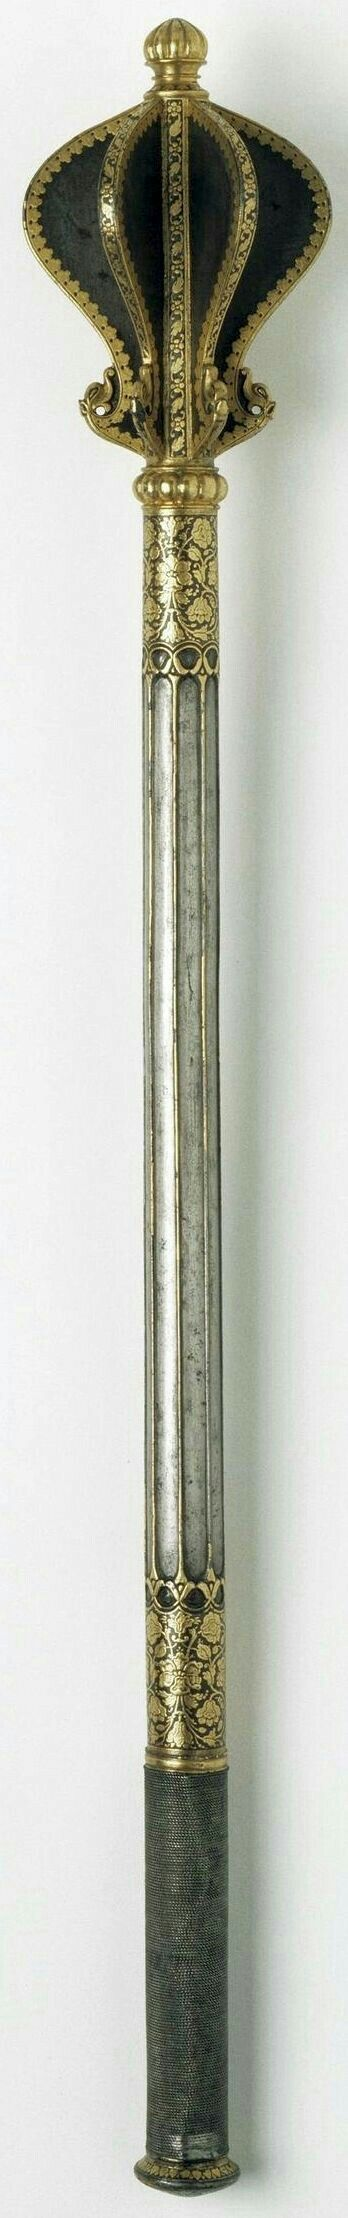 Flanged mace, ornate looking.